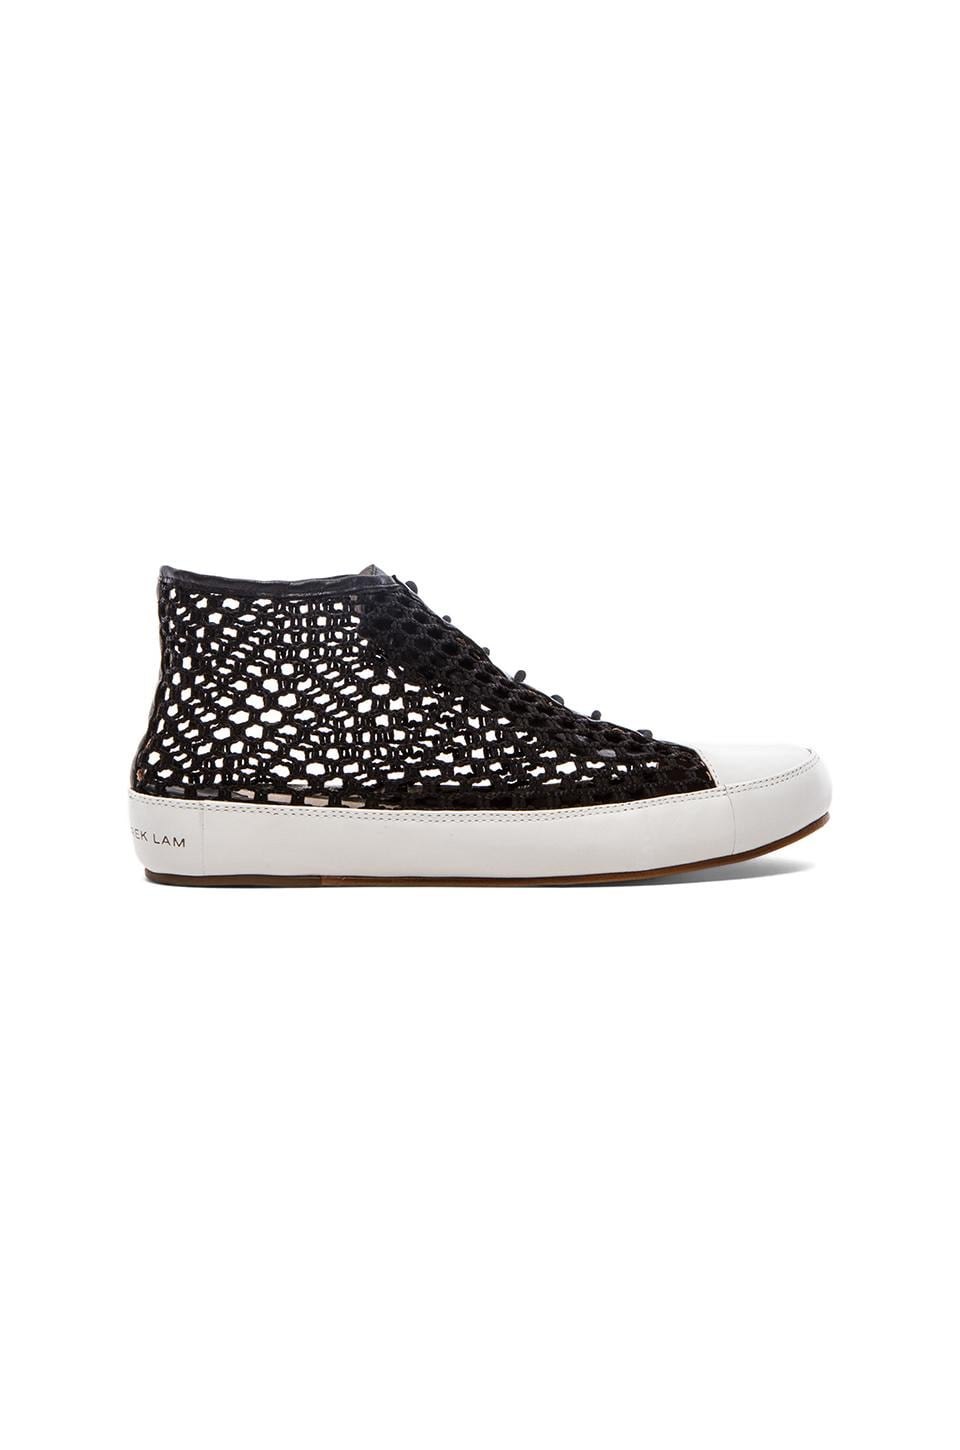 DEREK LAM 10 CROSBY Janel Too Sneaker in Black